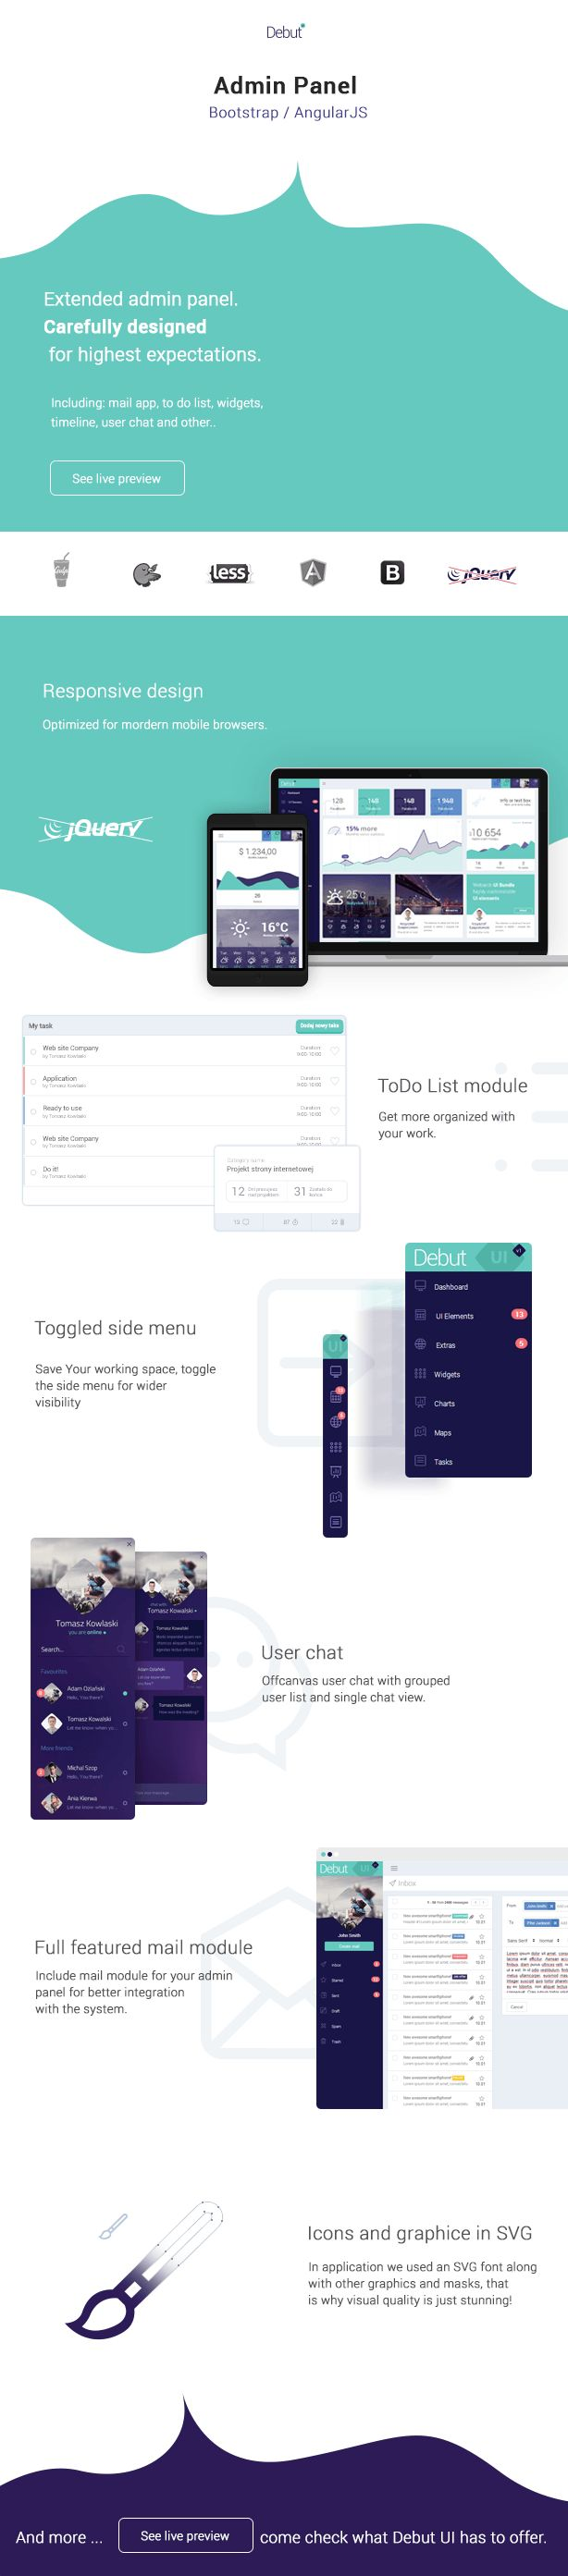 Premium AngularJS Admin Dashboard Template